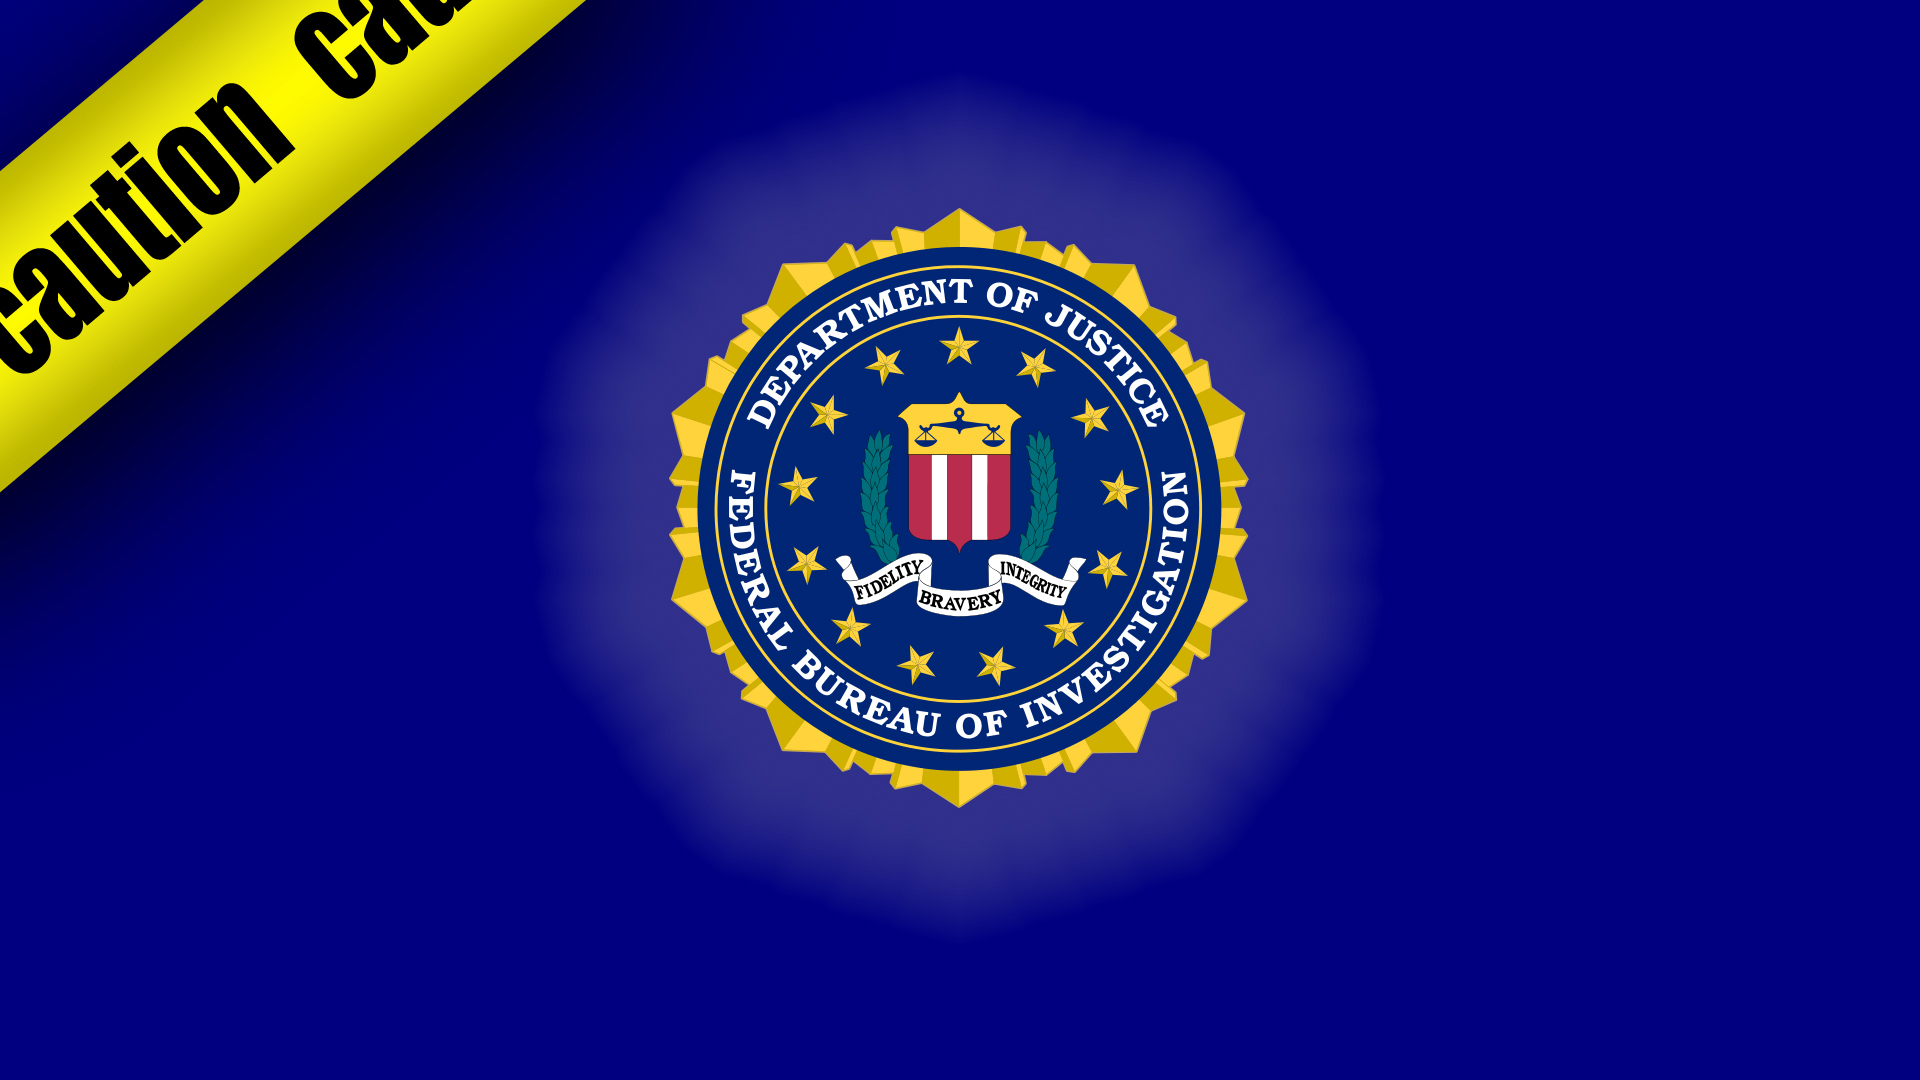 Related Wallpapers Fbi Logo With Terminal Warning Wallpapers 1920x1080